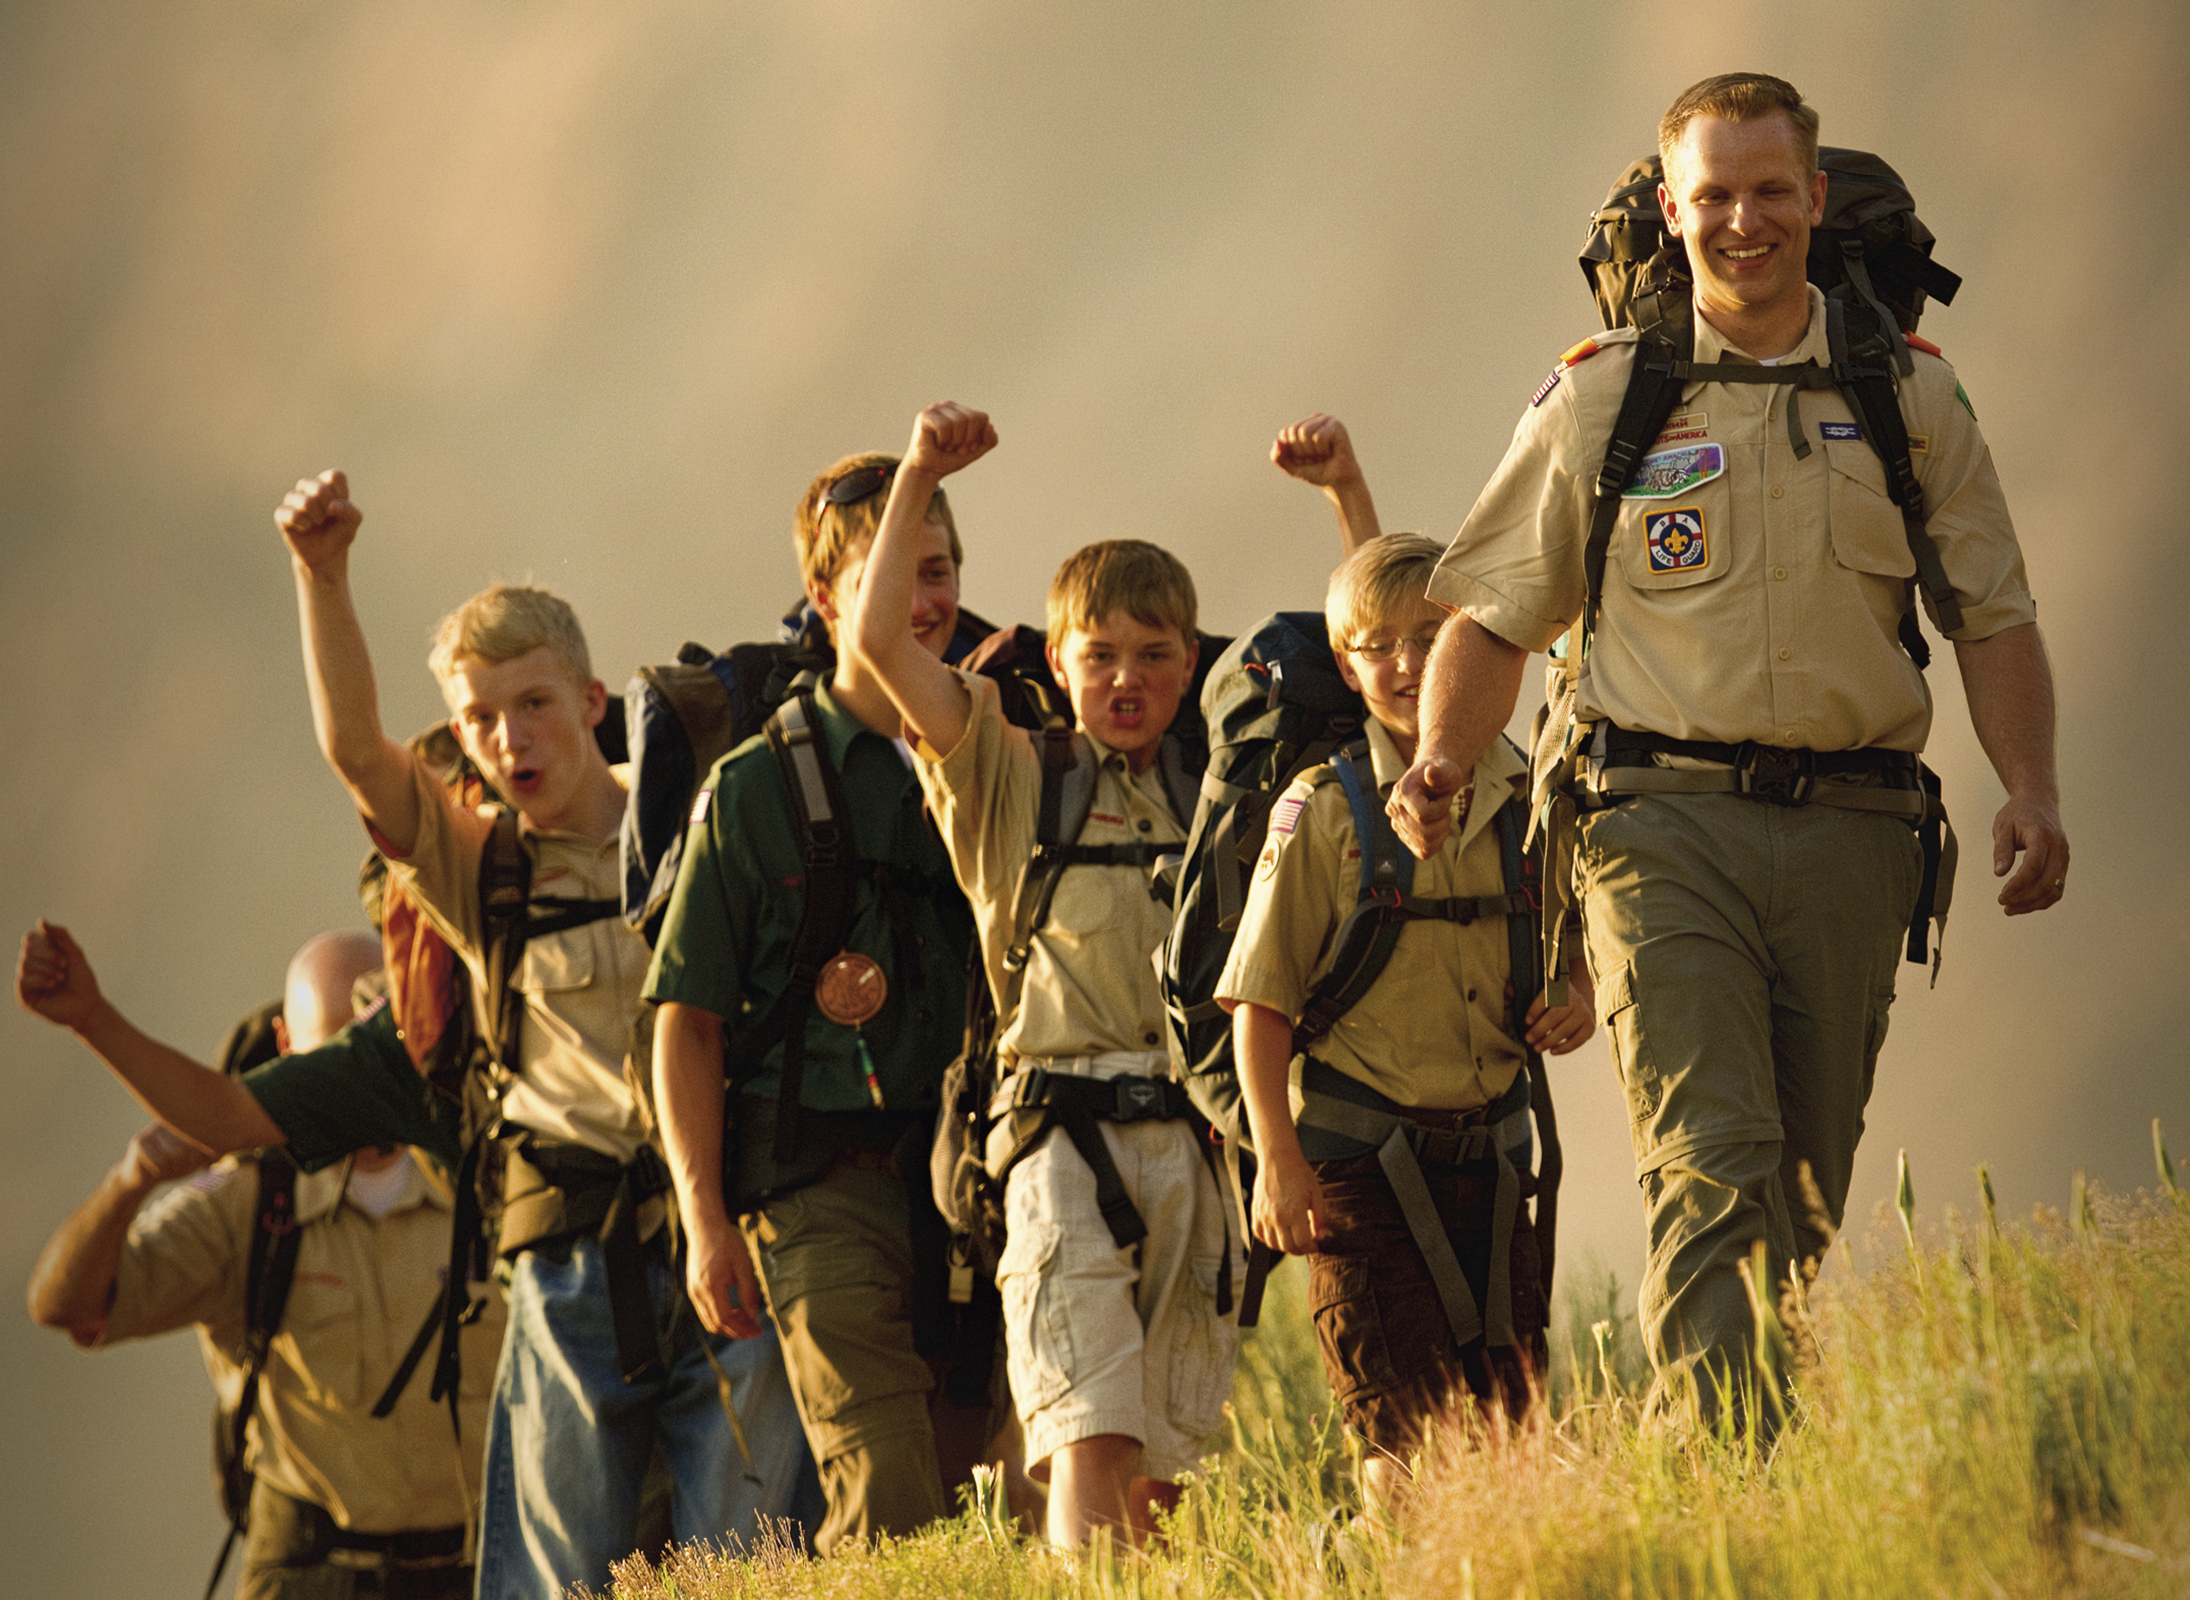 scout-leader-young-men-1164229-wallpaper